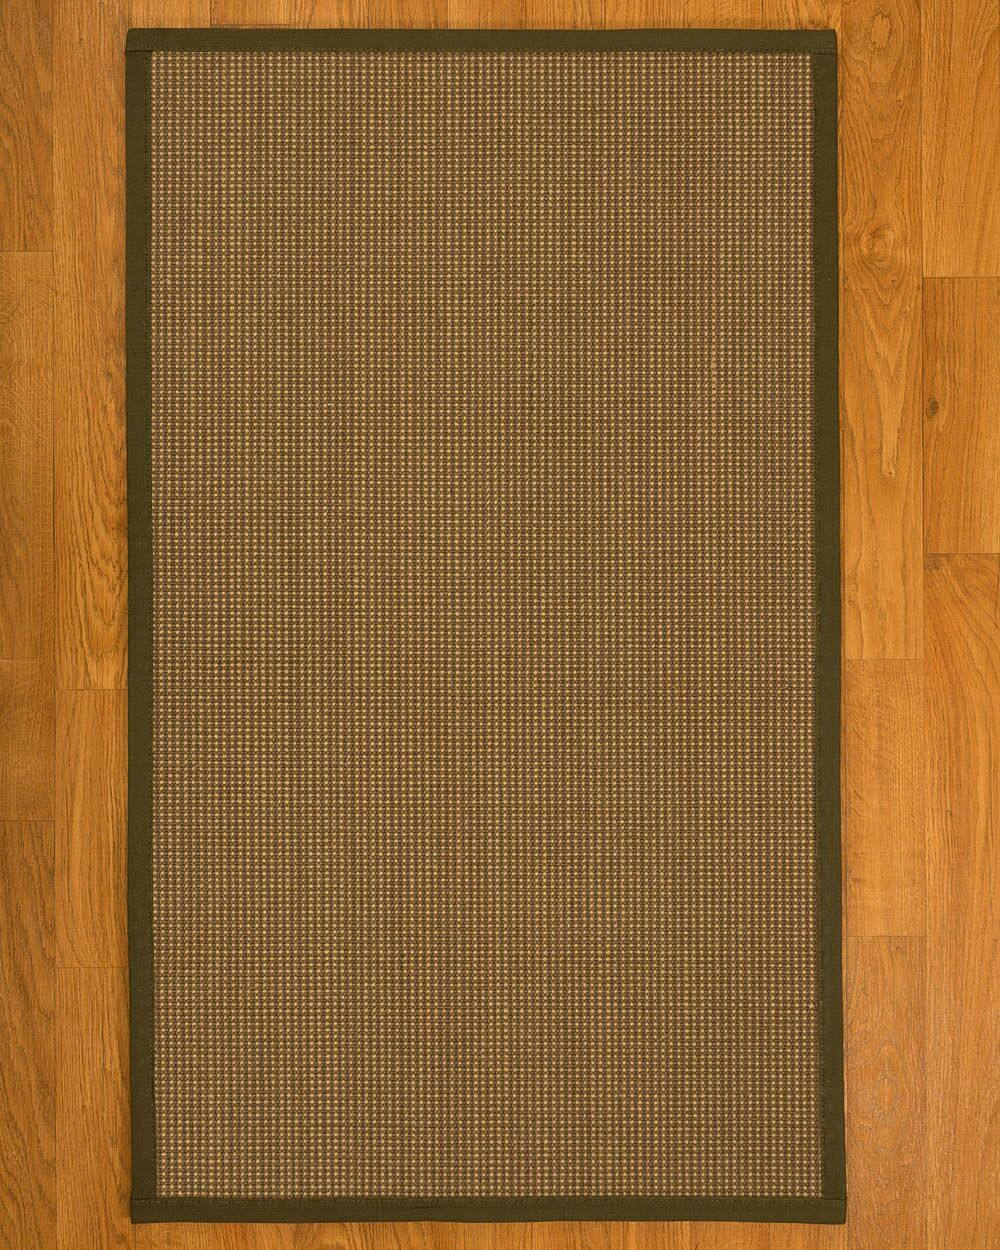 Asther Hand-Woven Brown Area Rug Rug Size: Rectangle 2' X 3'